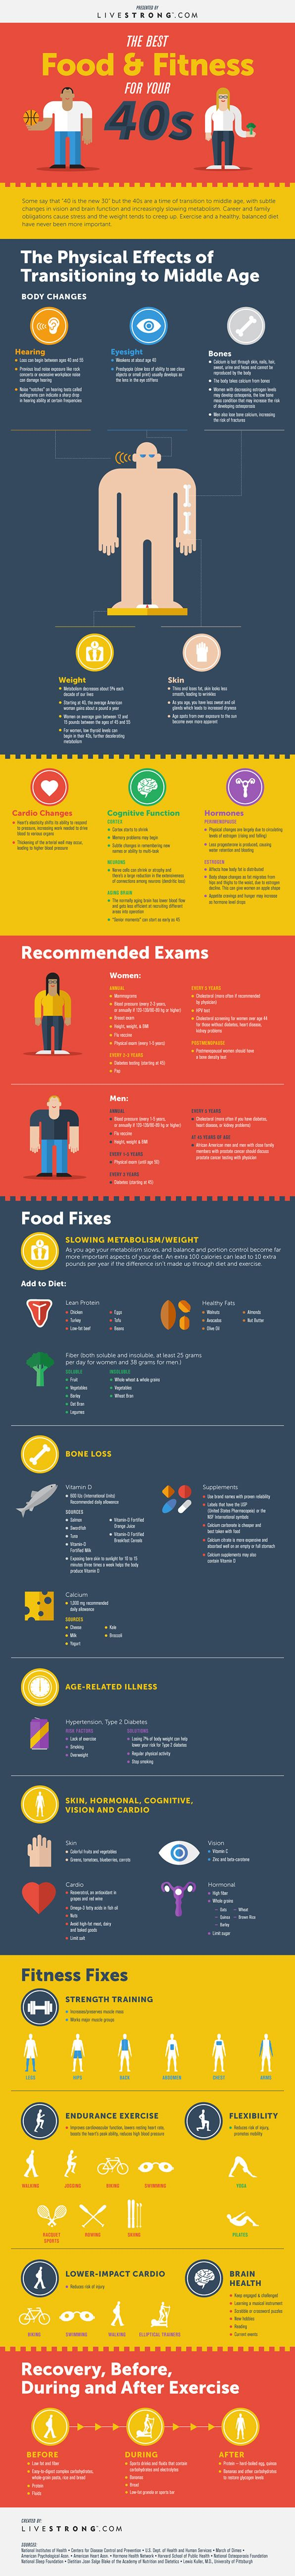 Eating and Exercise Tips for Your 40s (Infographic) | LIVESTRONG.COM